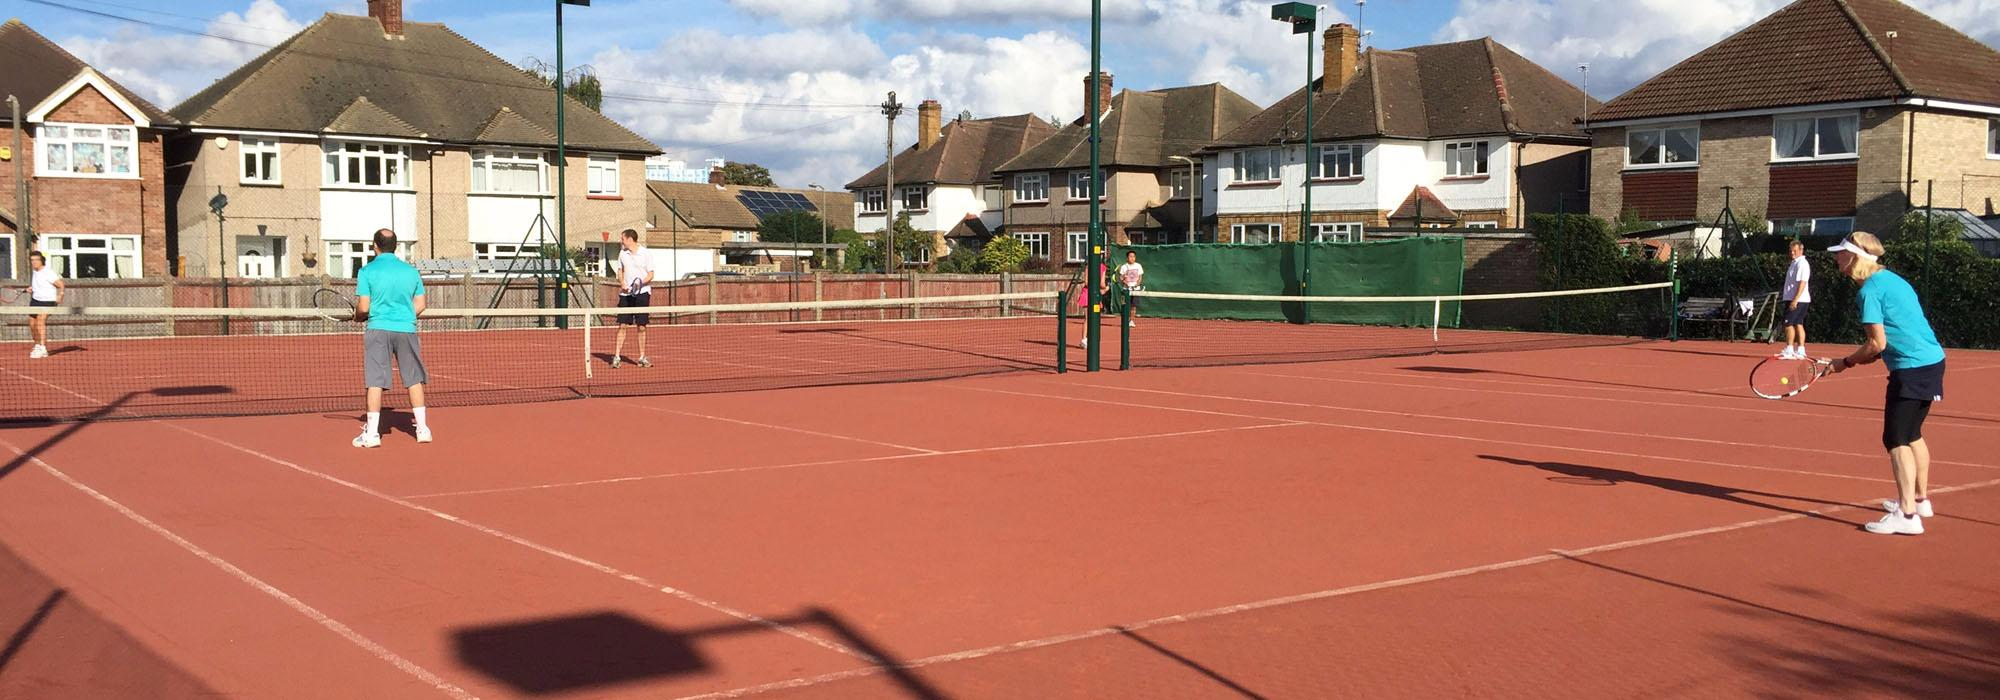 Courts 1 & 2 - Floodlit Artificial Clay